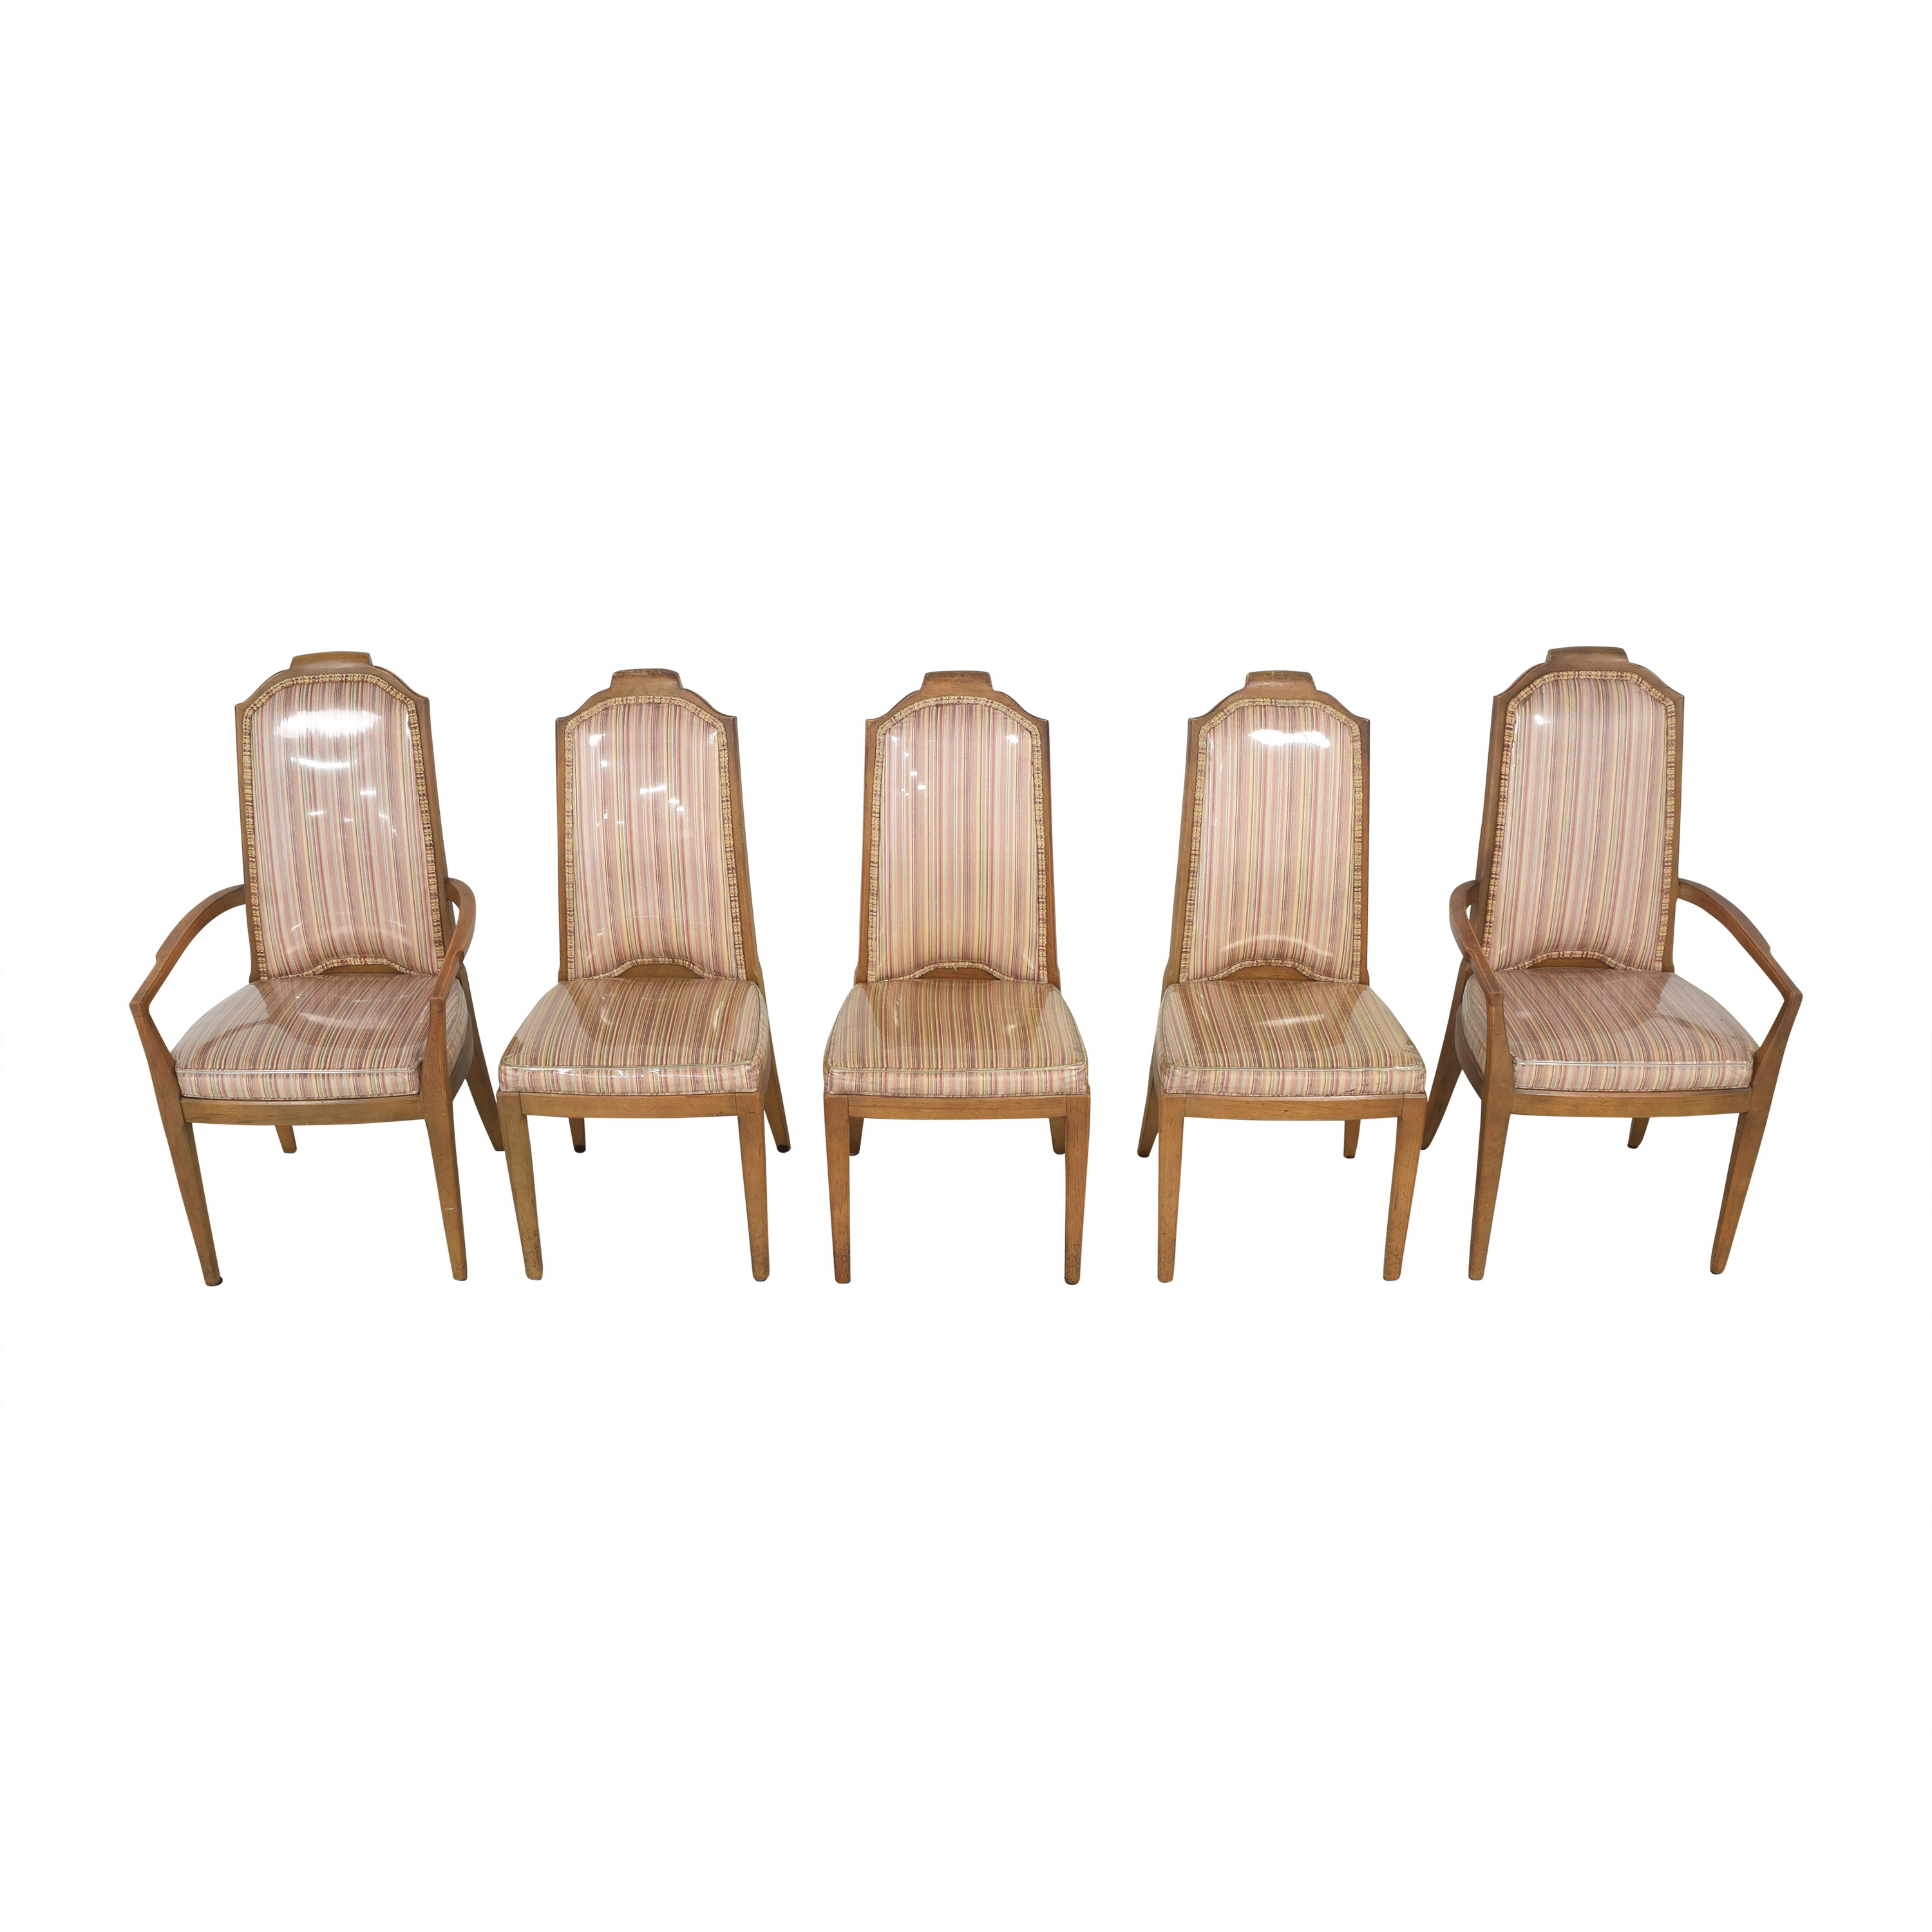 Drexel Drexel Stripe Upholstered Dining Chairs second hand